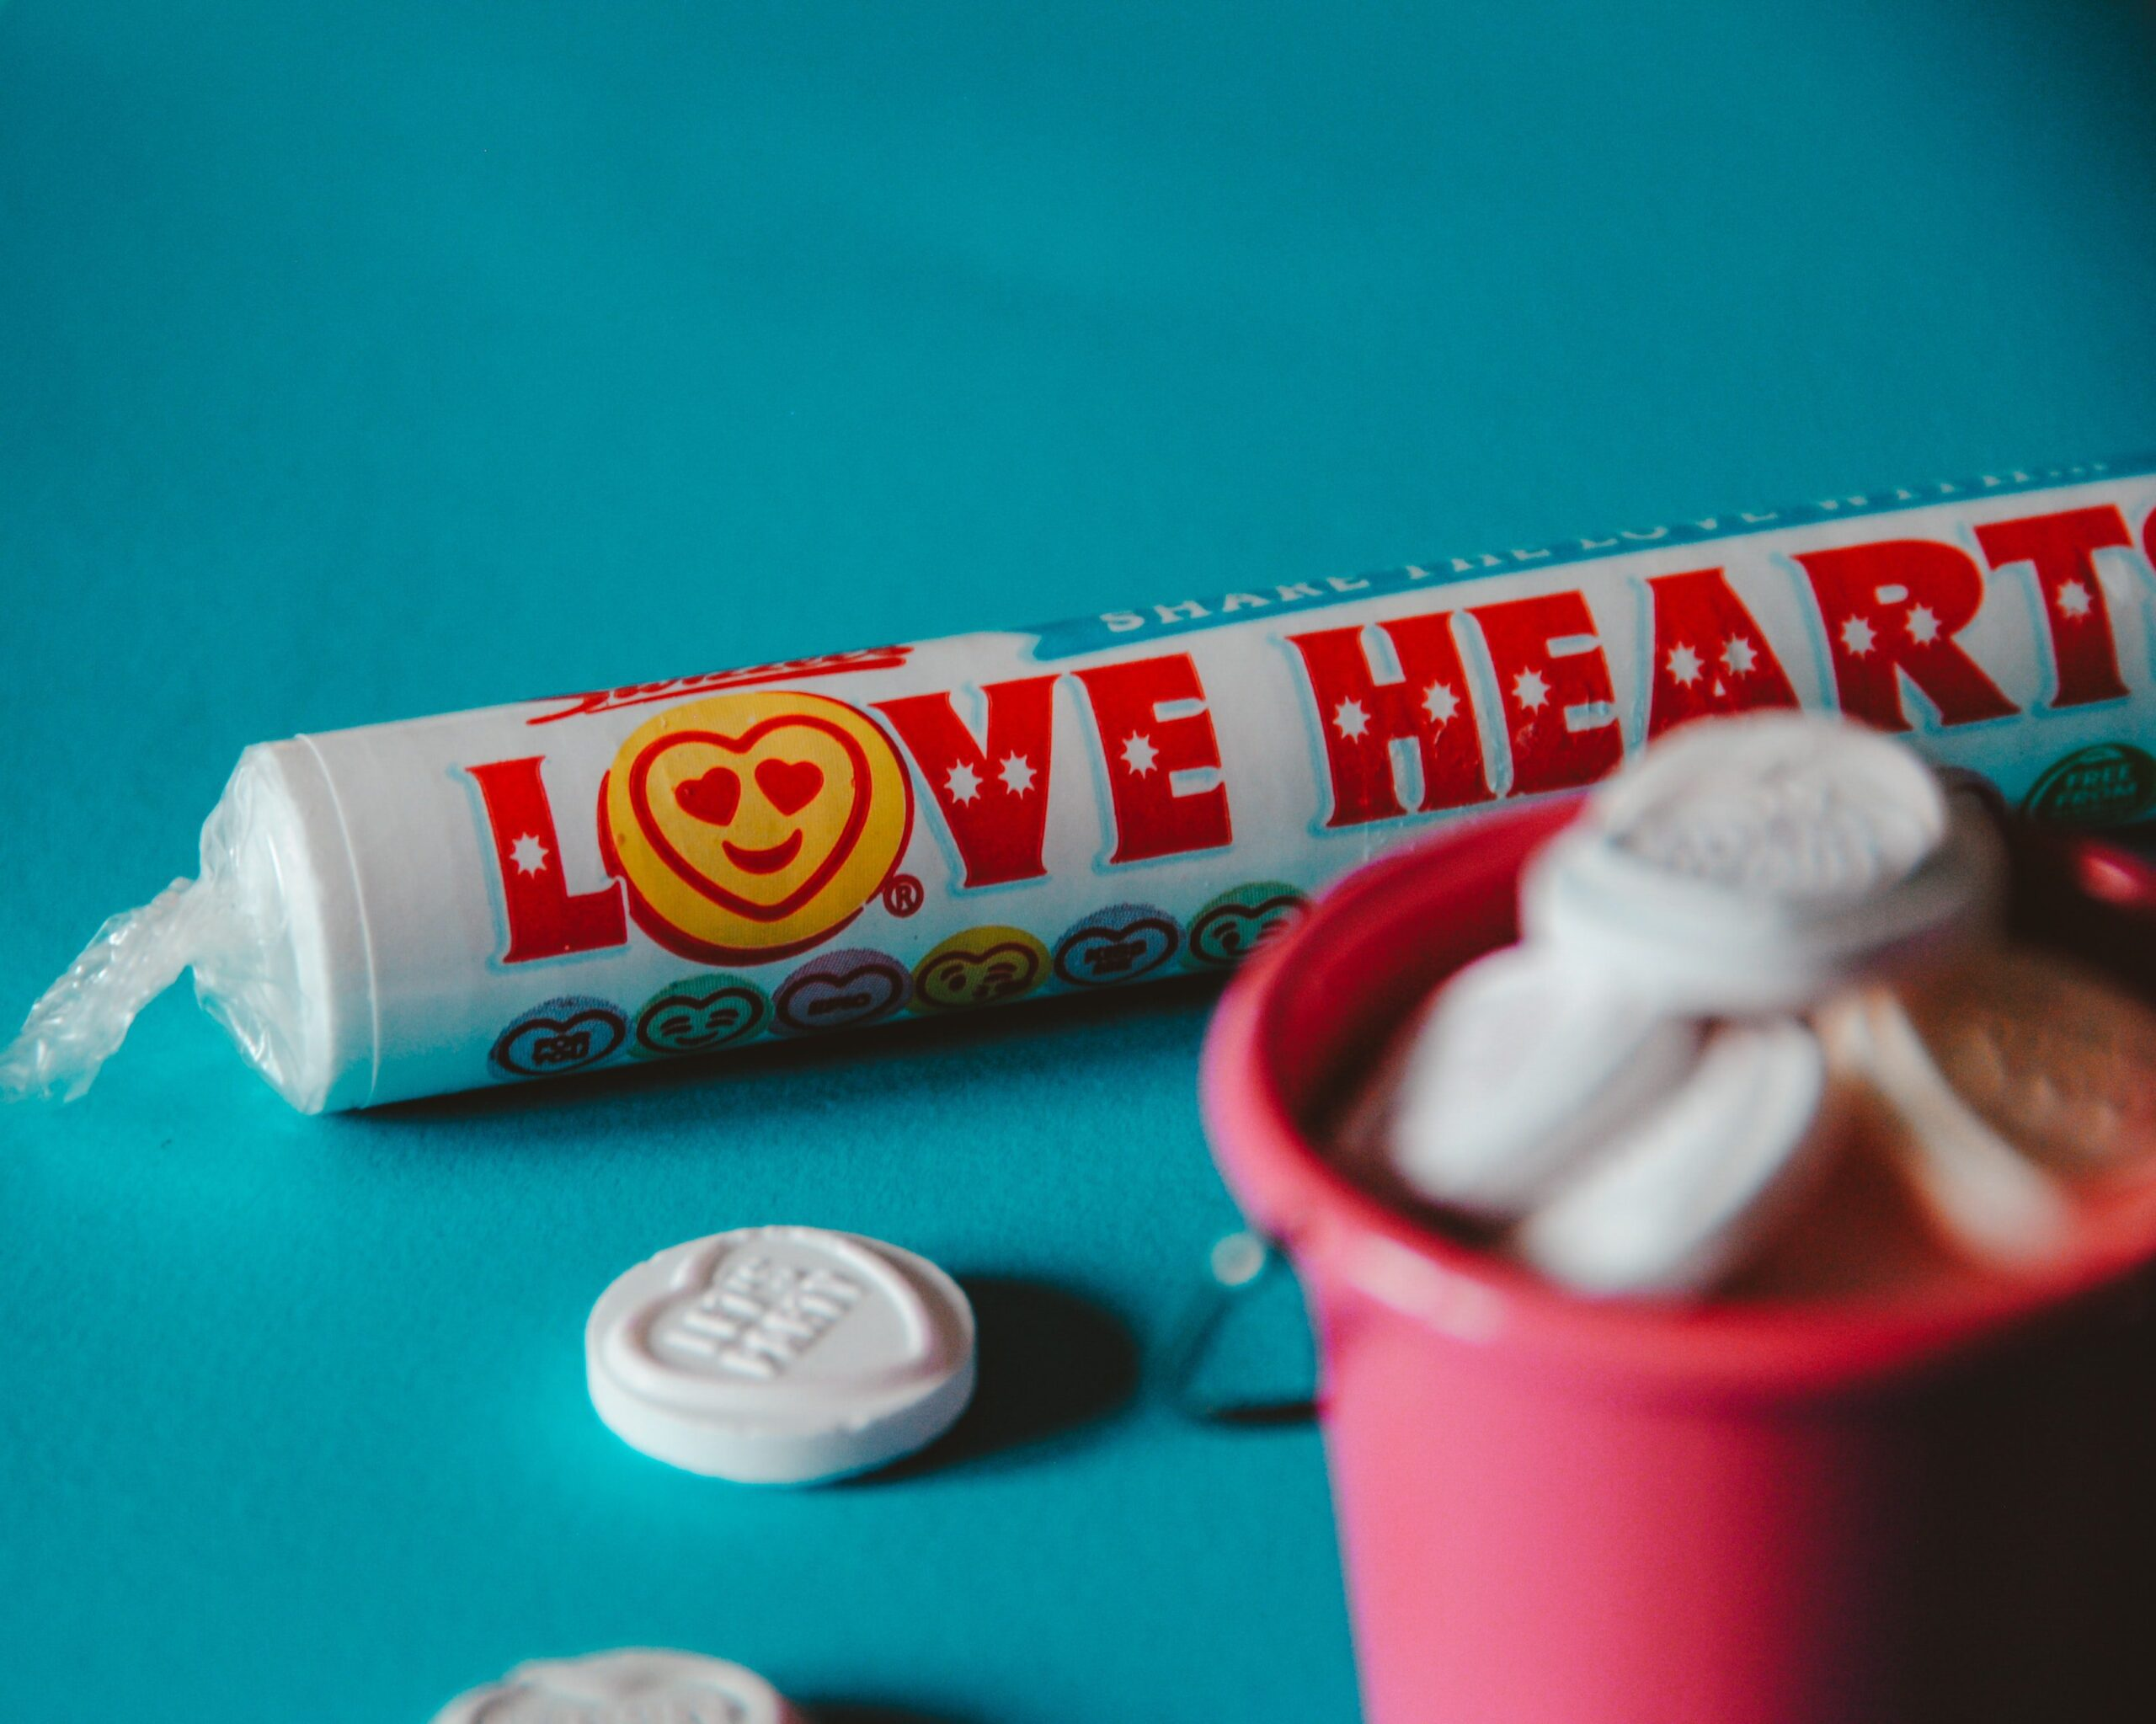 A packet of Love Hearts sweets on a blue table